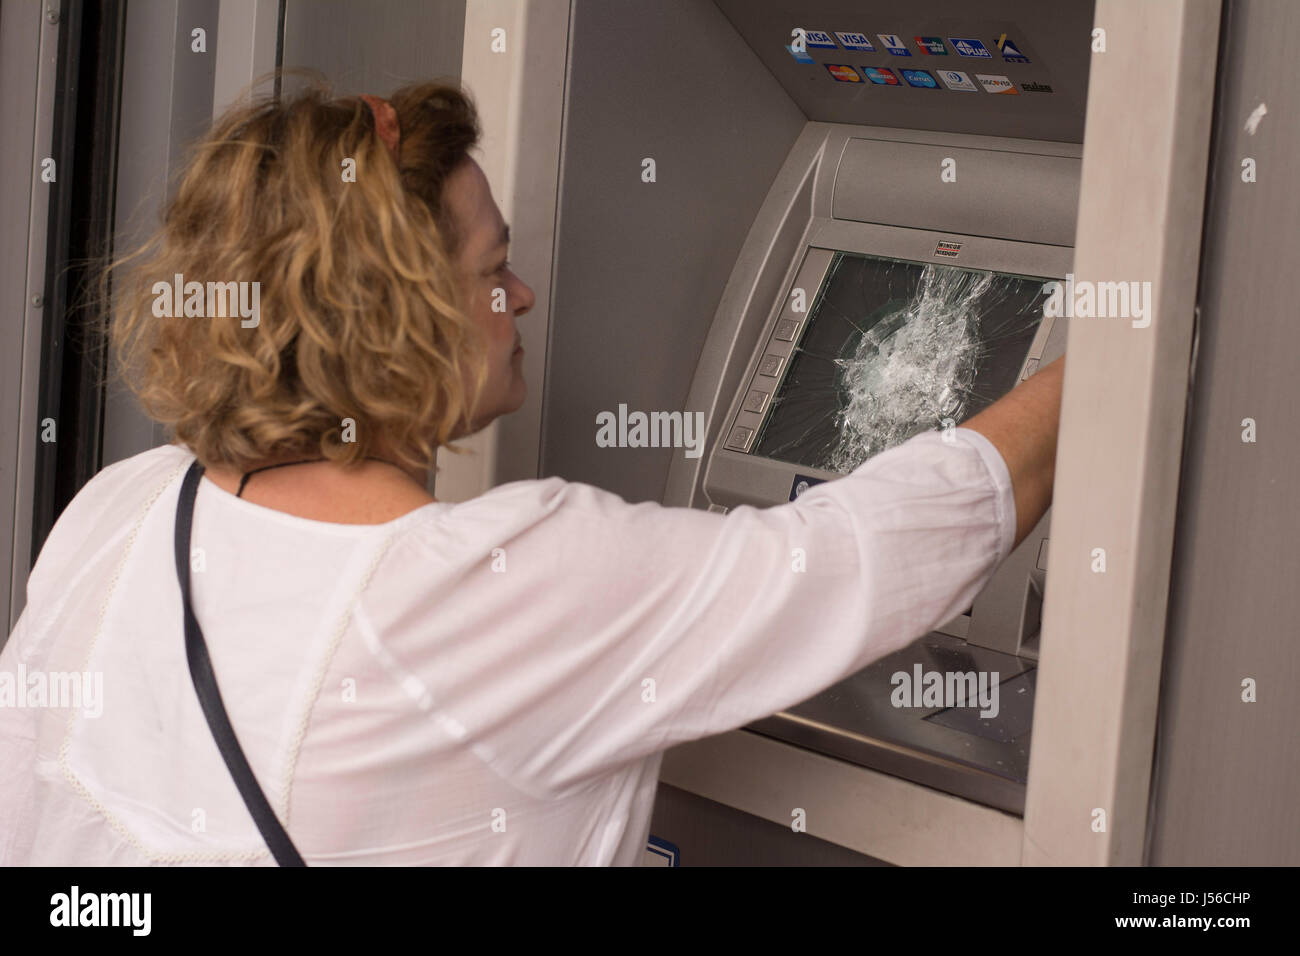 Athens, Greece. 17th May, 2017. A woman uses an atm machine that was smashed by protesters. Thousands took to the - Stock Image